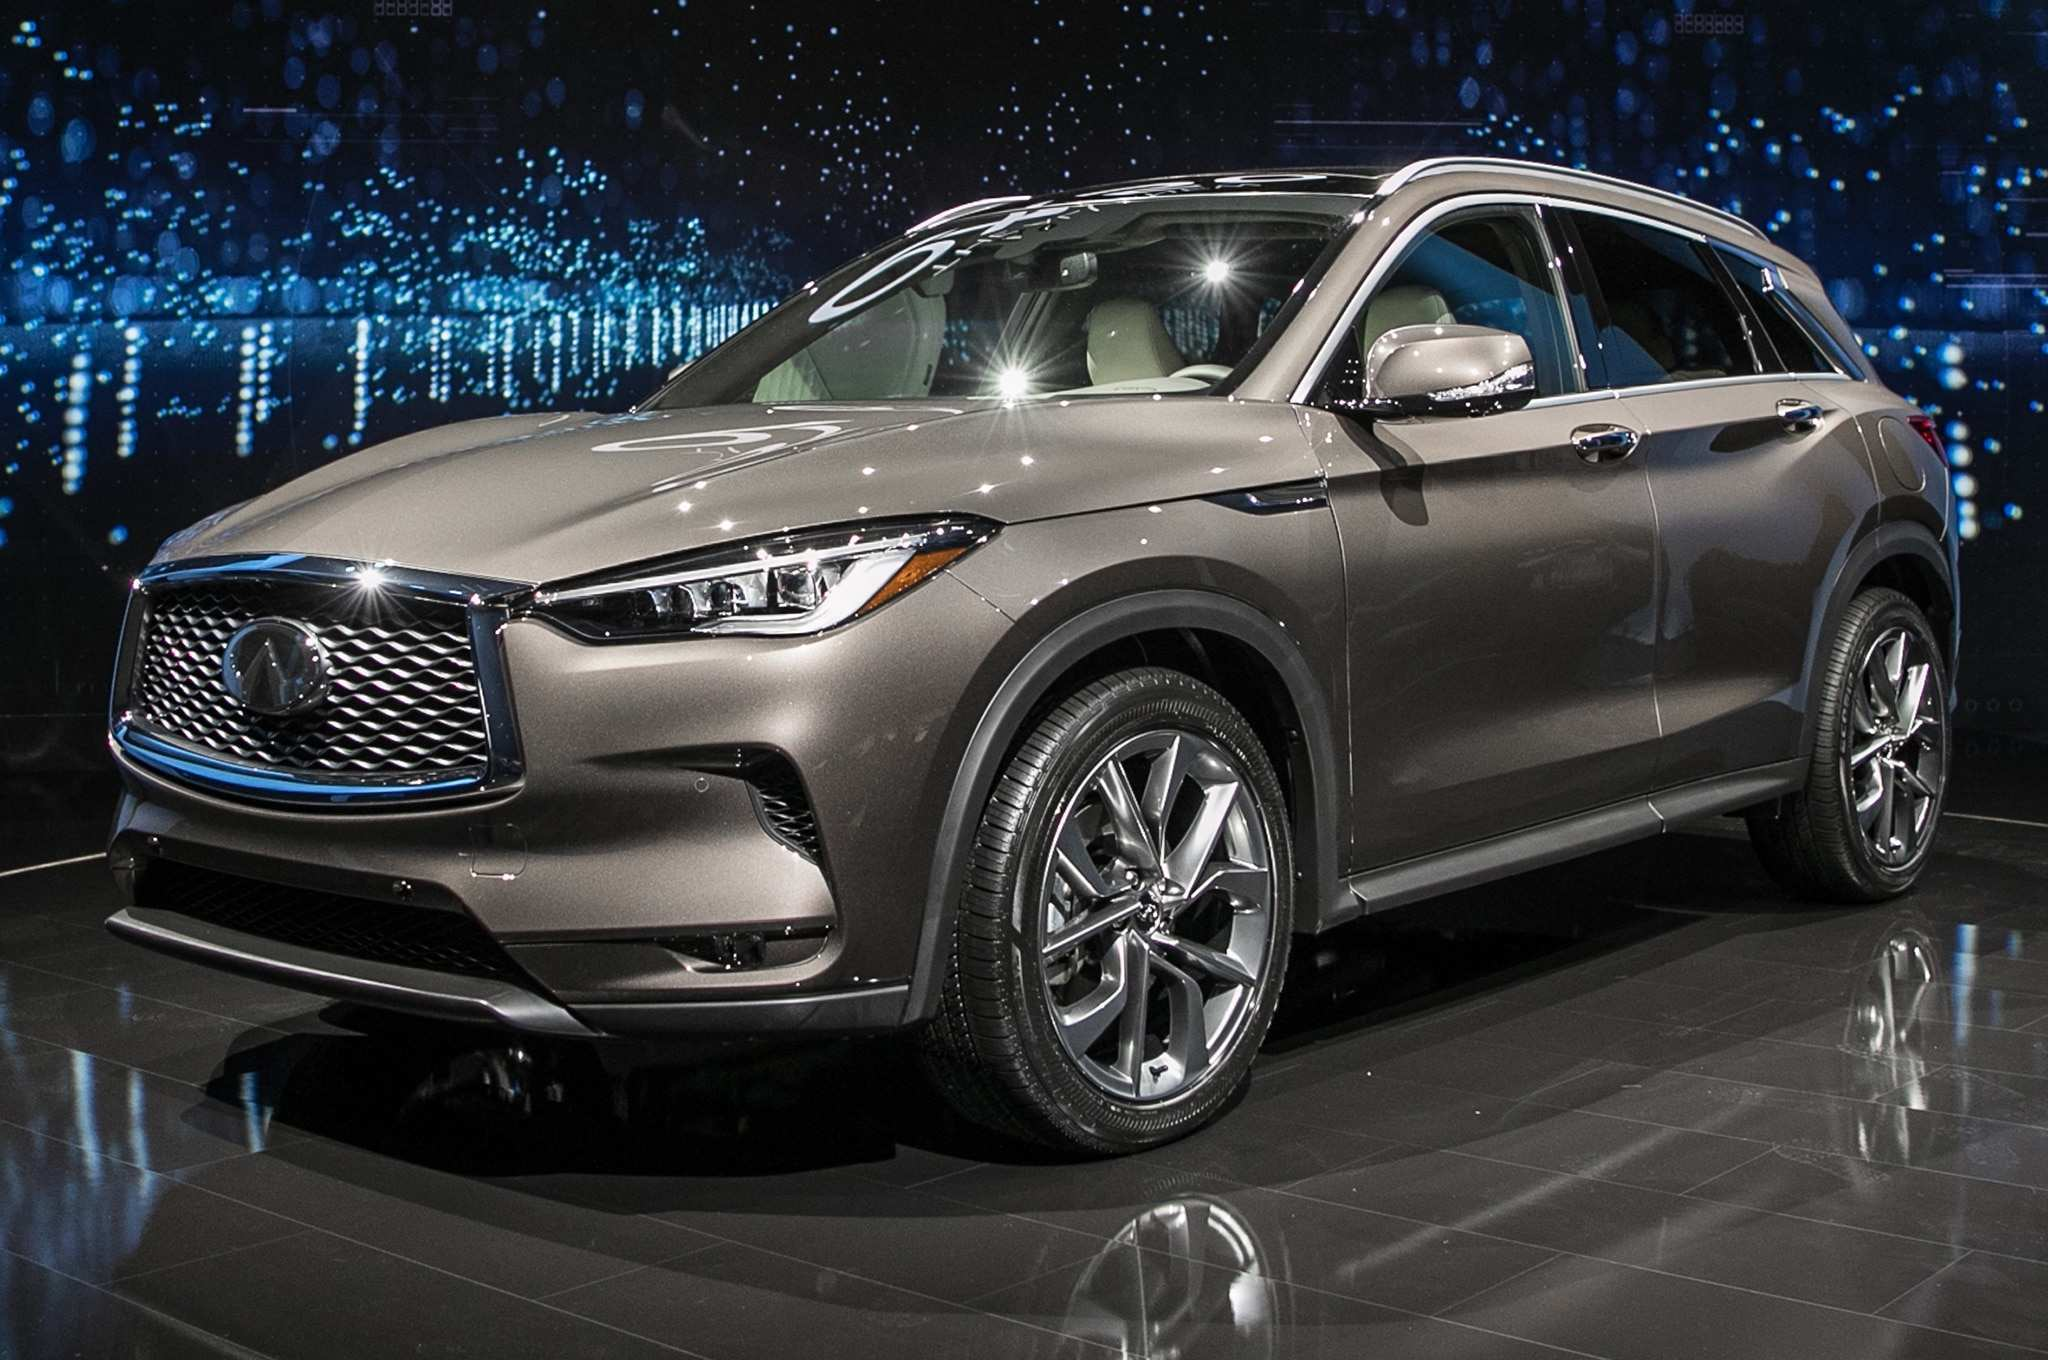 74 Gallery of 2019 Infiniti Qx50 Horsepower Redesign with 2019 Infiniti Qx50 Horsepower